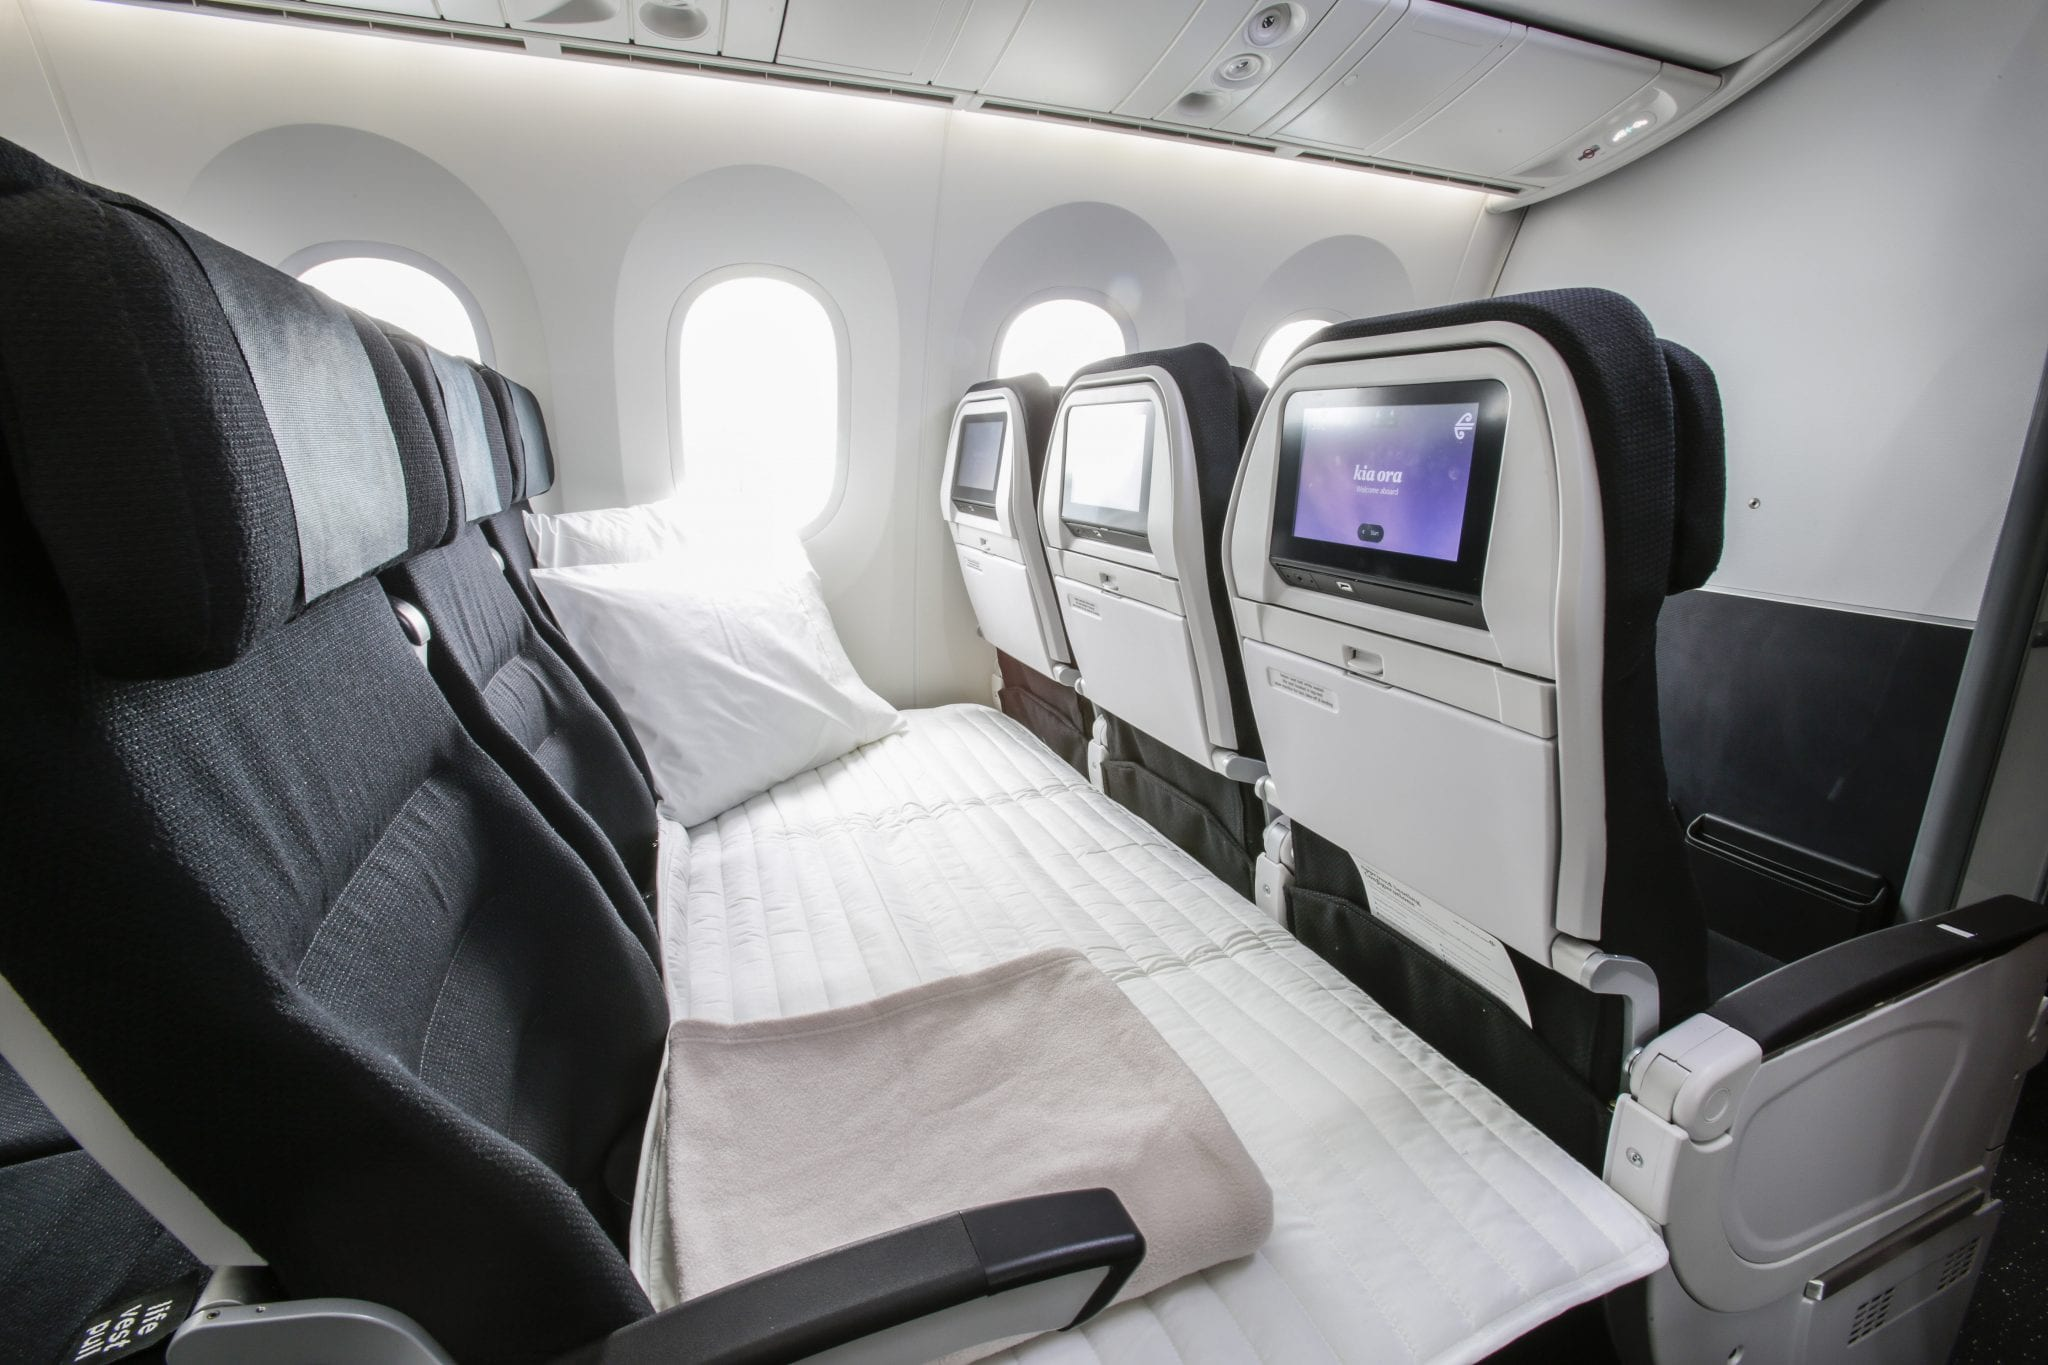 air new zealand economy sky couch snowsbest. Black Bedroom Furniture Sets. Home Design Ideas